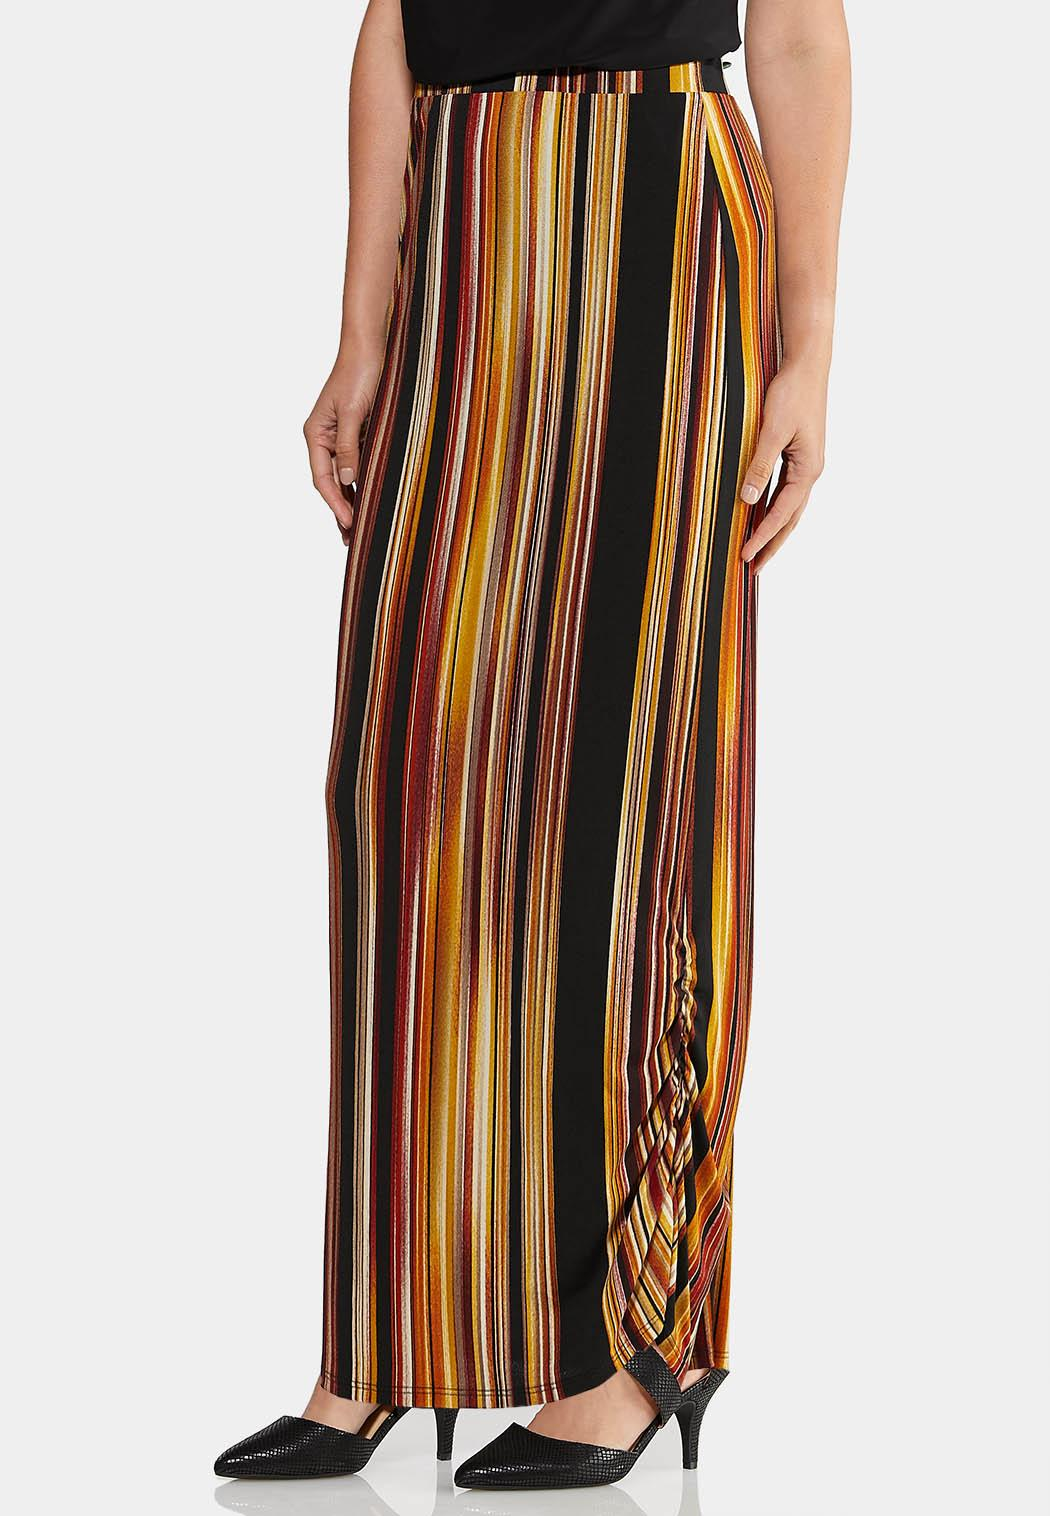 attractive style new images of baby Ruched Maxi Skirt Maxi Cato Fashions